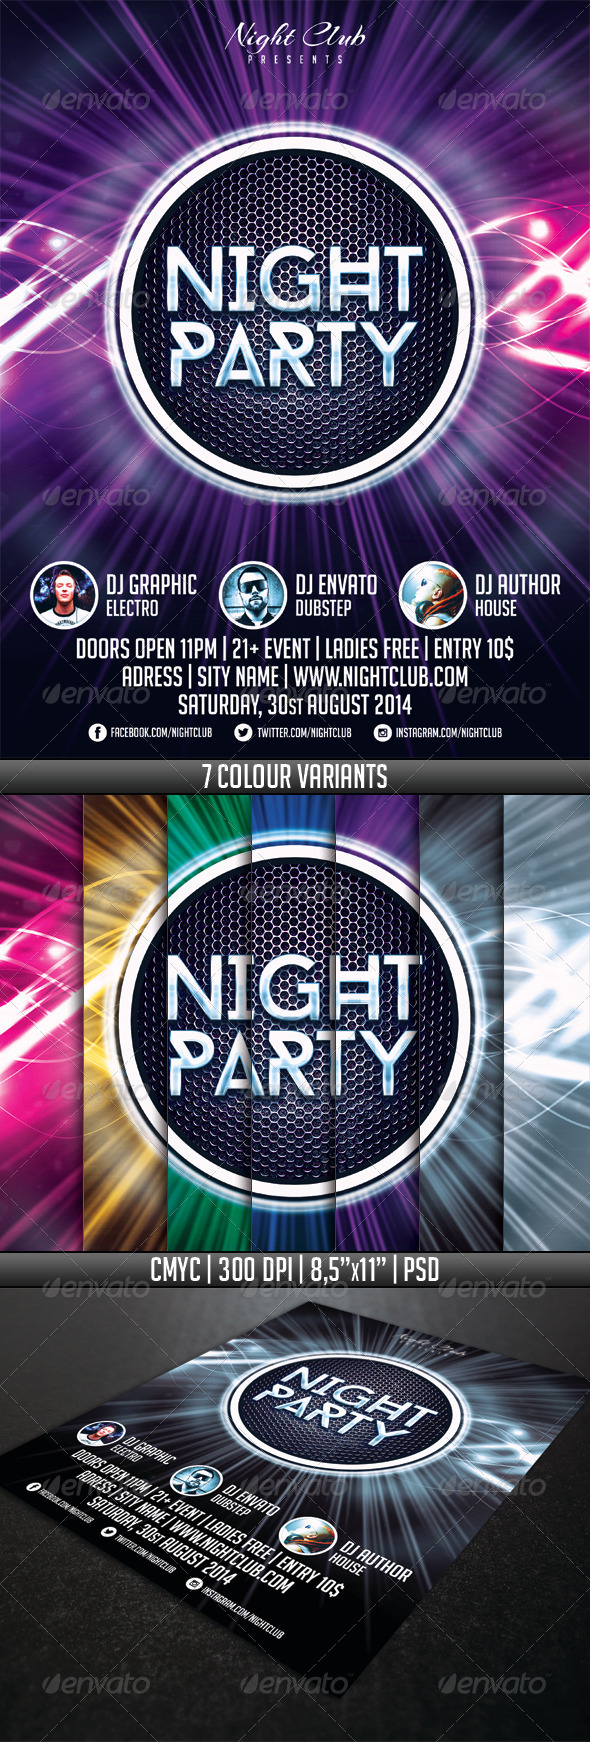 GraphicRiver Night Party Flyer Template 6388952